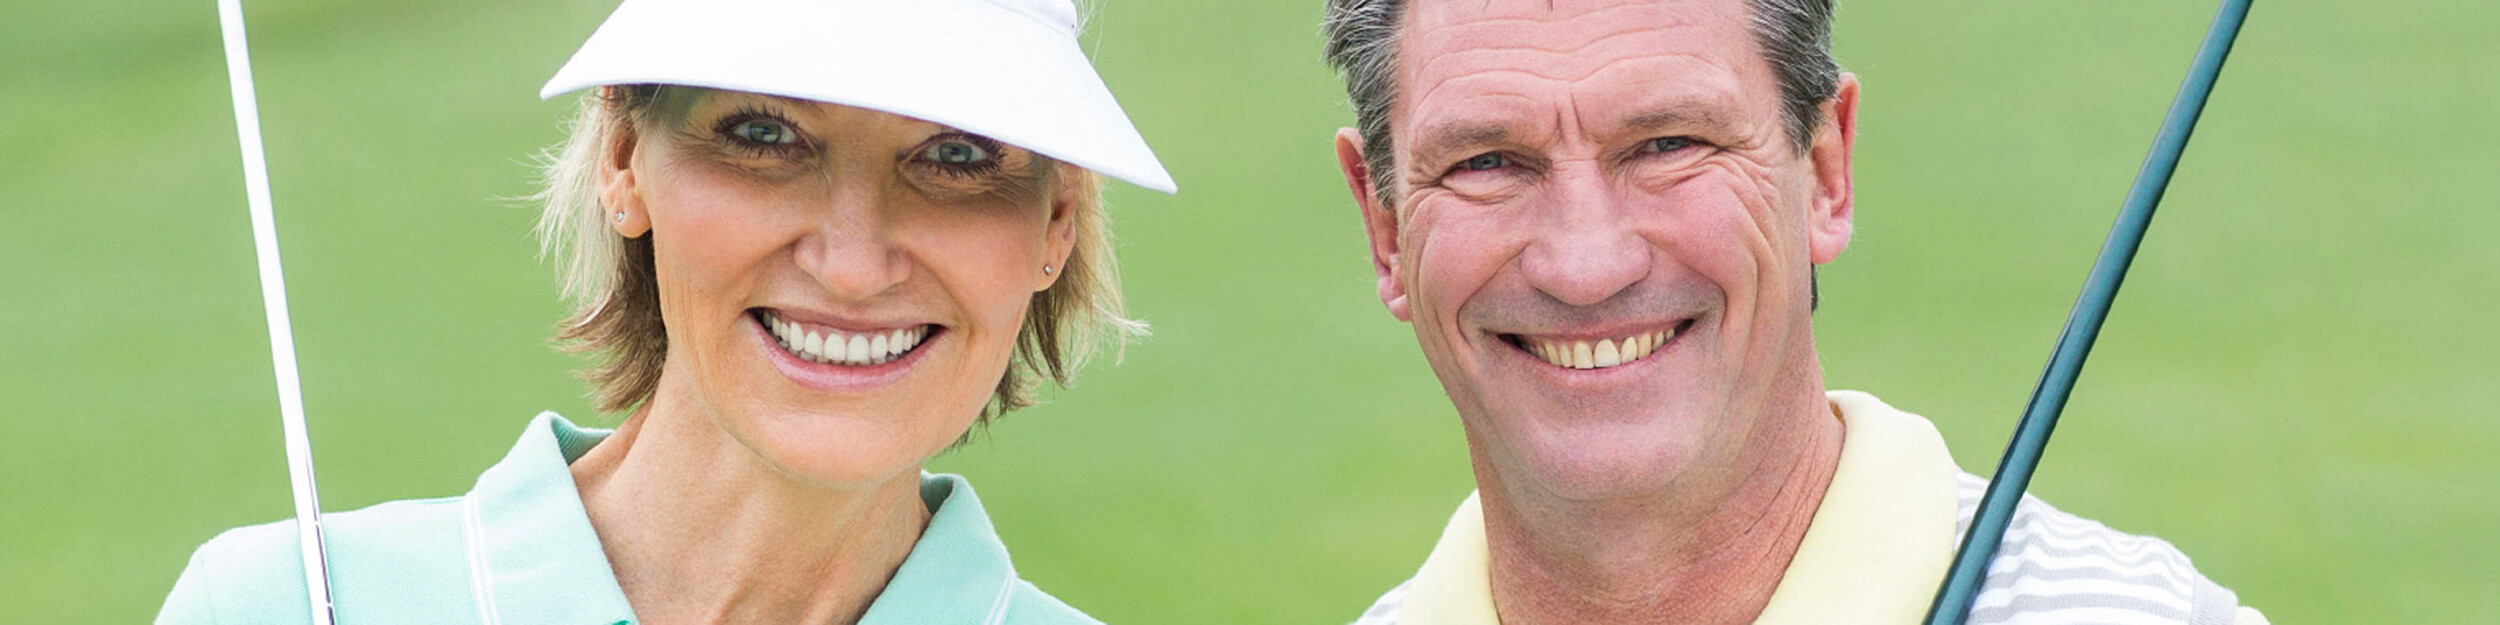 woman and man in golfing gear